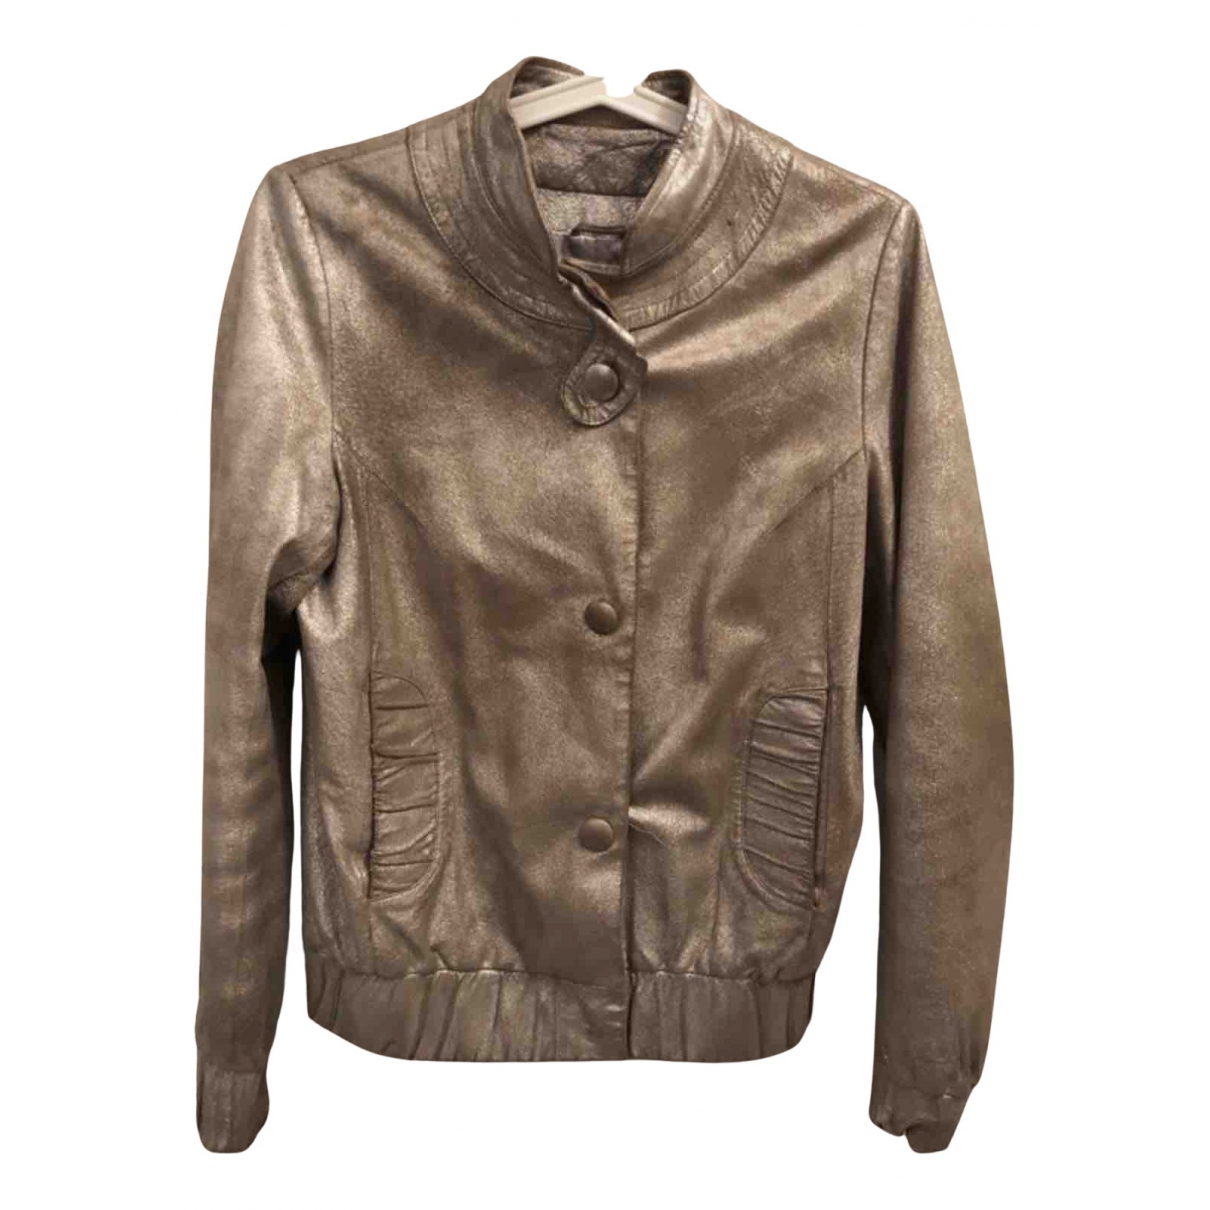 Maje N Gold Leather Leather jacket for Women 36 FR